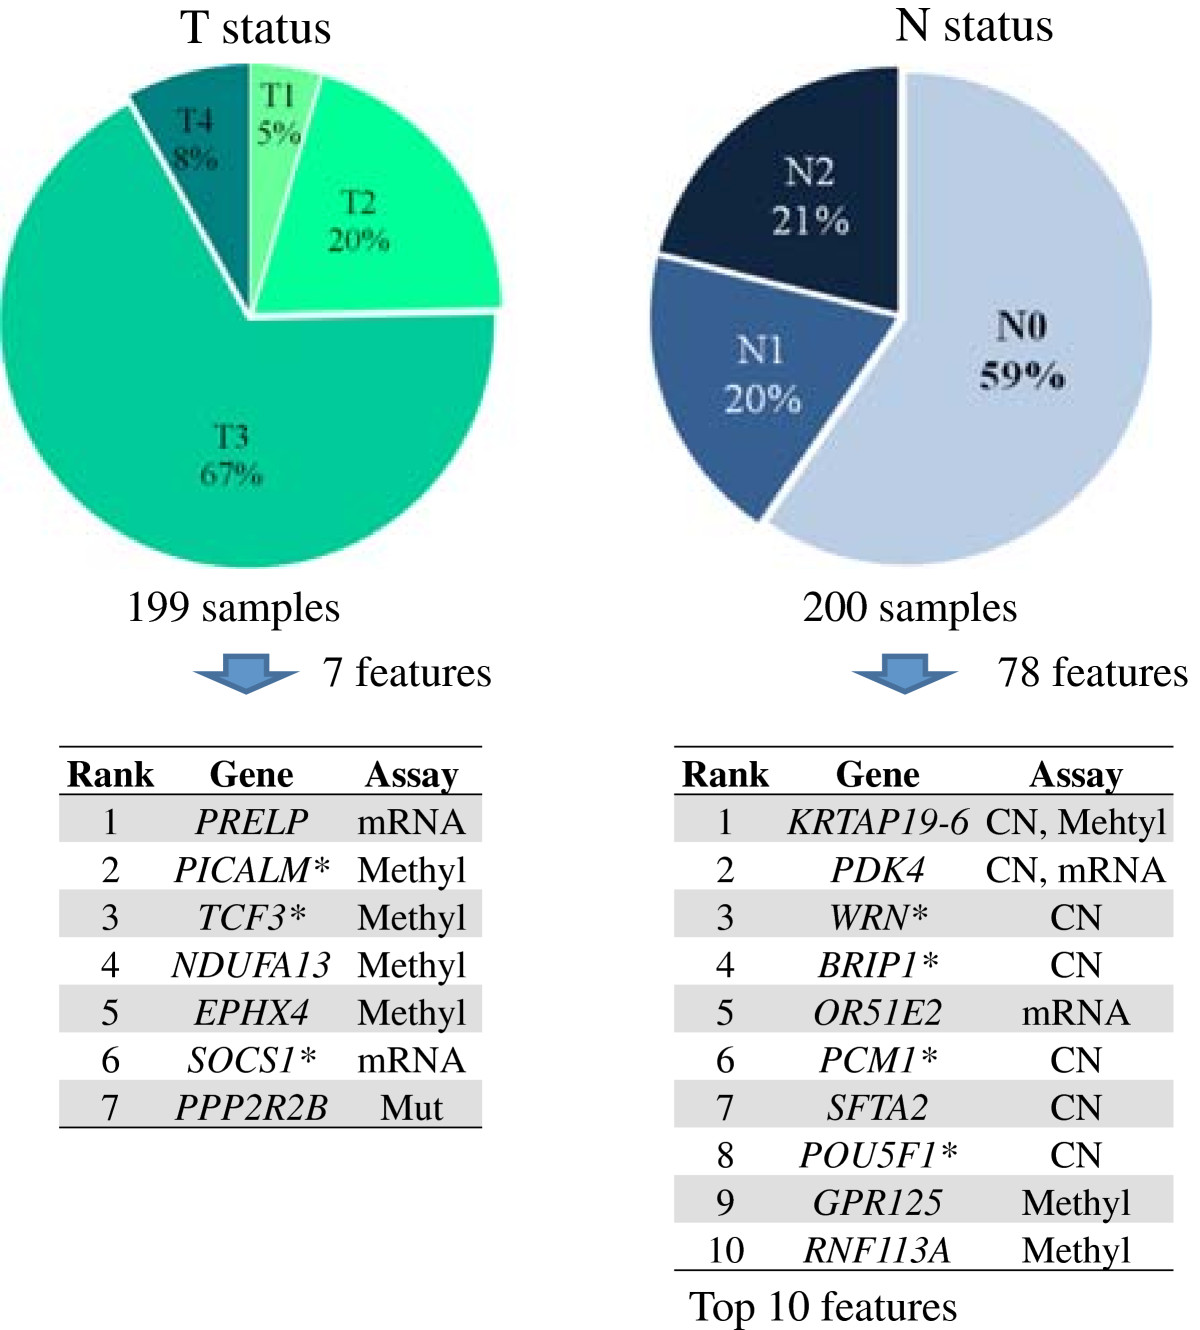 https://static-content.springer.com/image/art%3A10.1186%2F1755-8794-6-54/MediaObjects/12920_2013_Article_438_Fig6_HTML.jpg